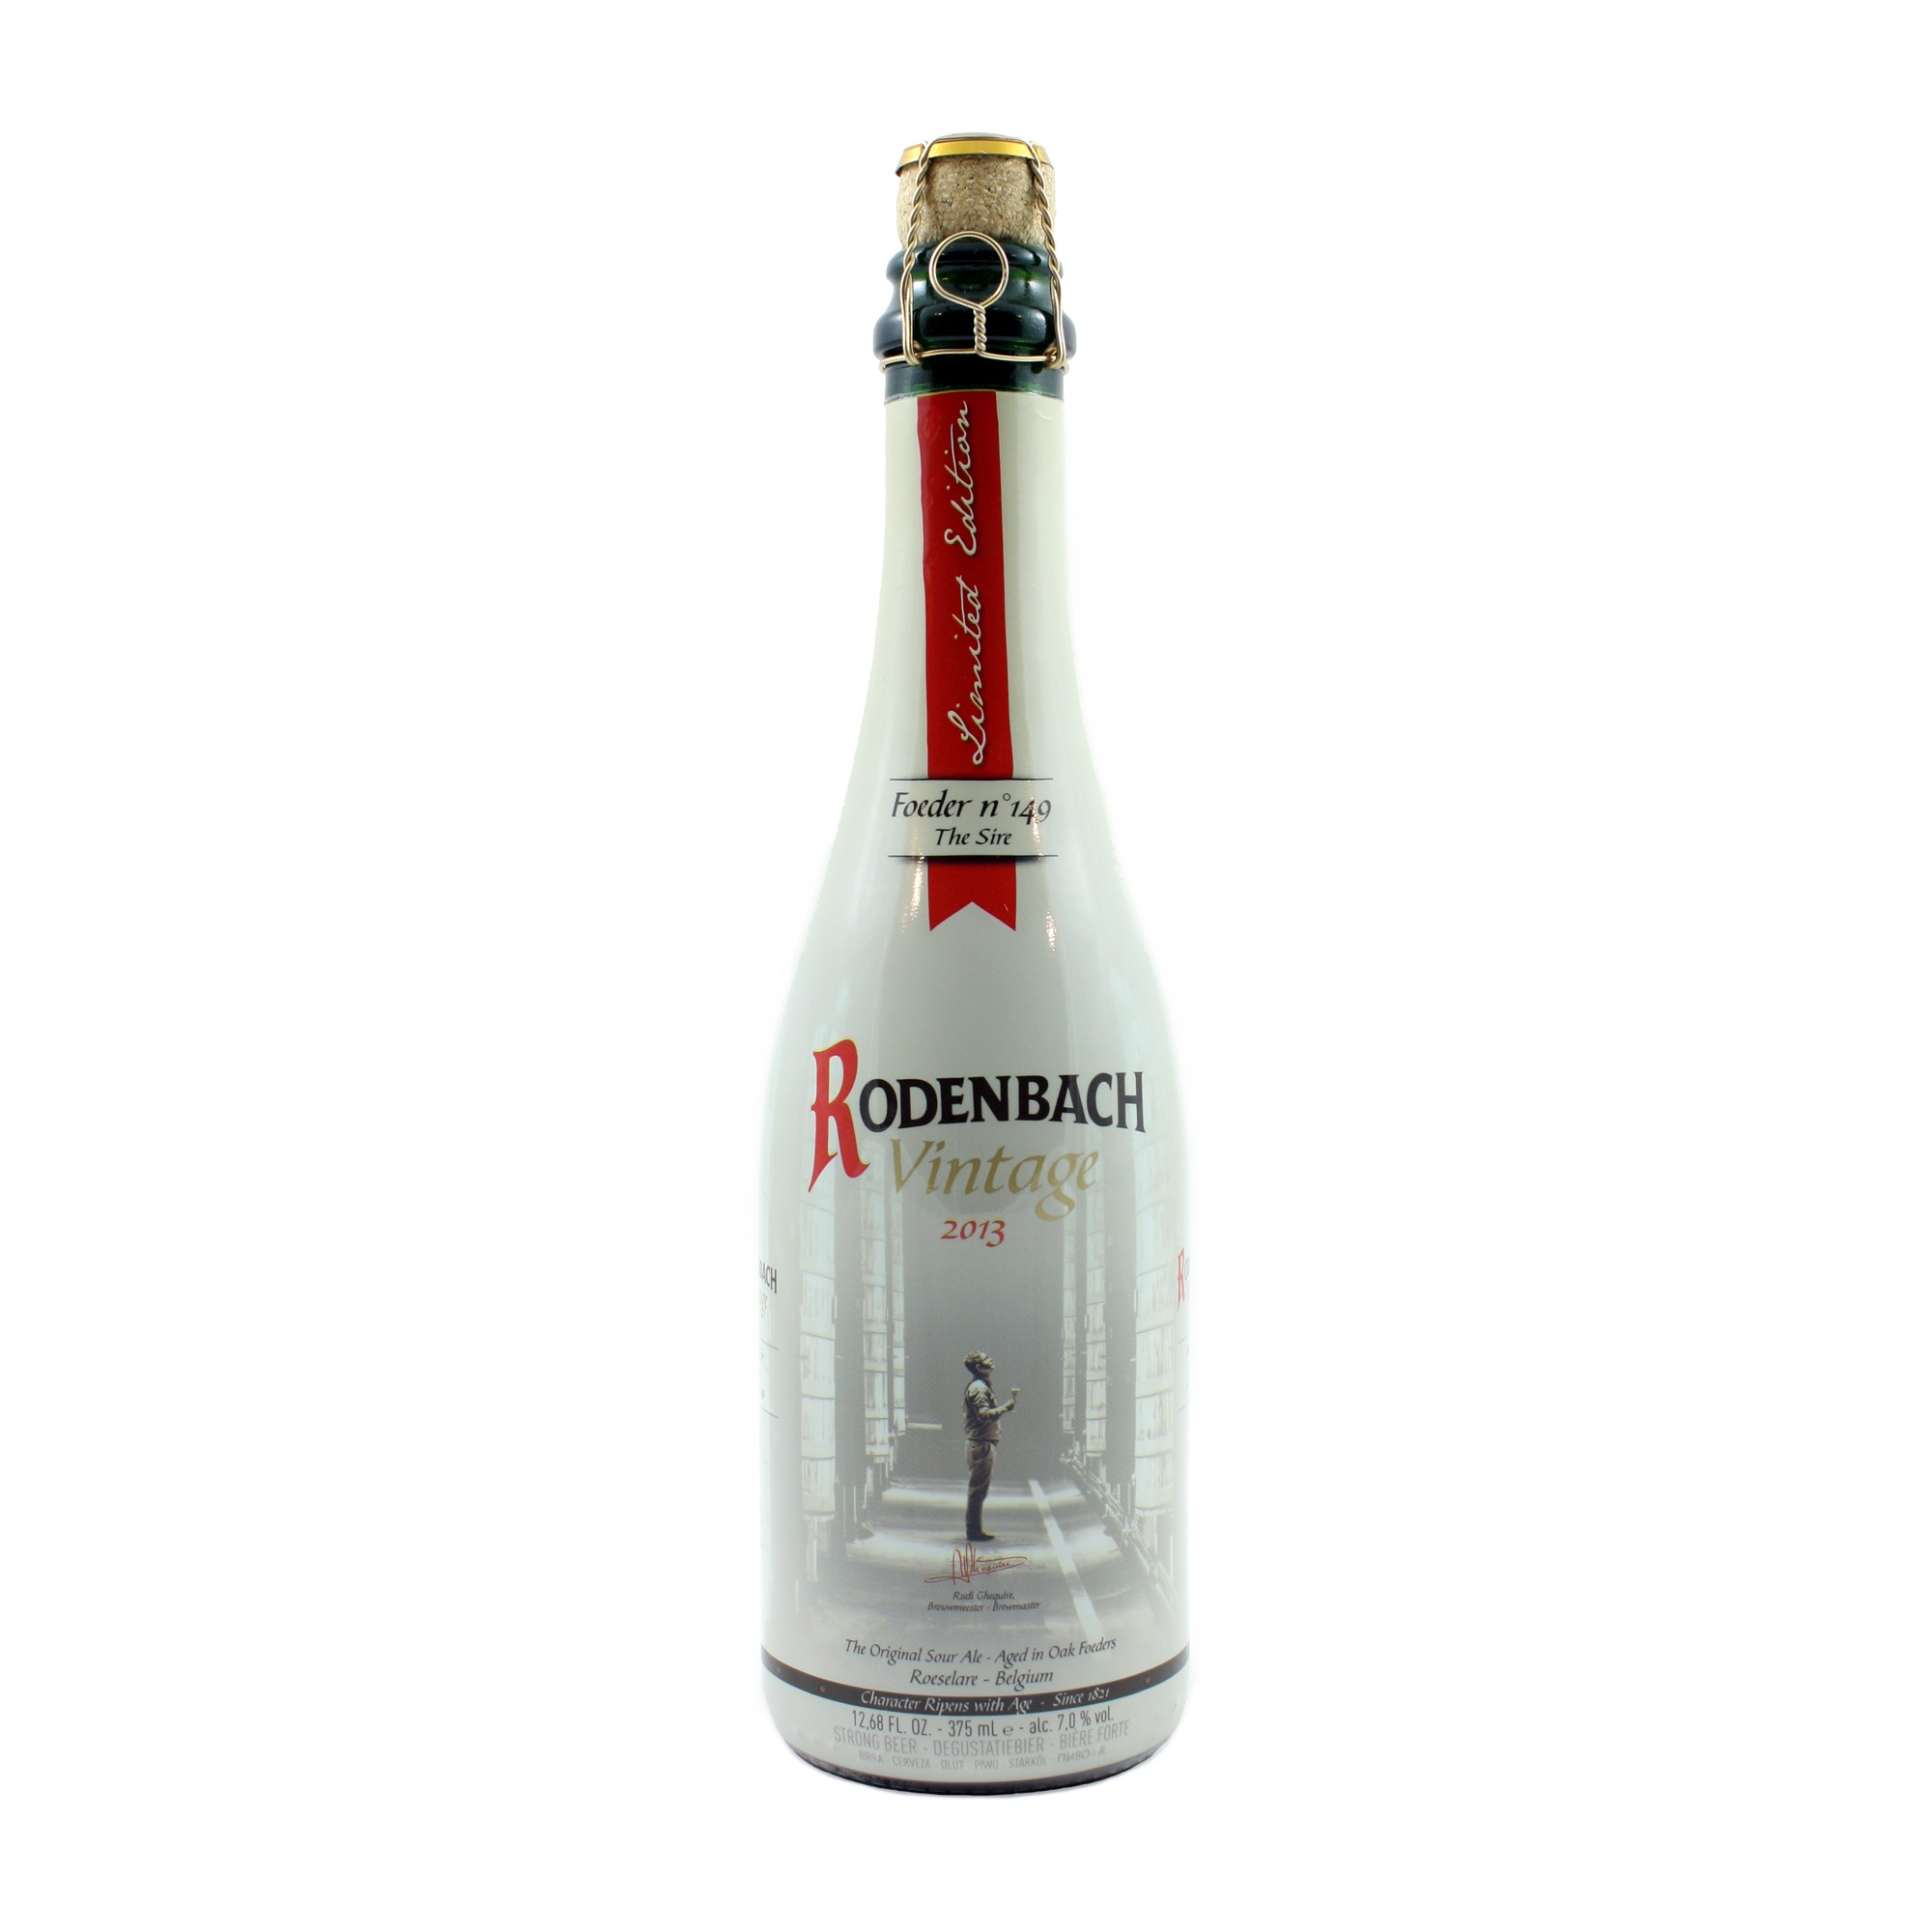 Rodenbach Vintage Limited Edition 2013 37,5 cl